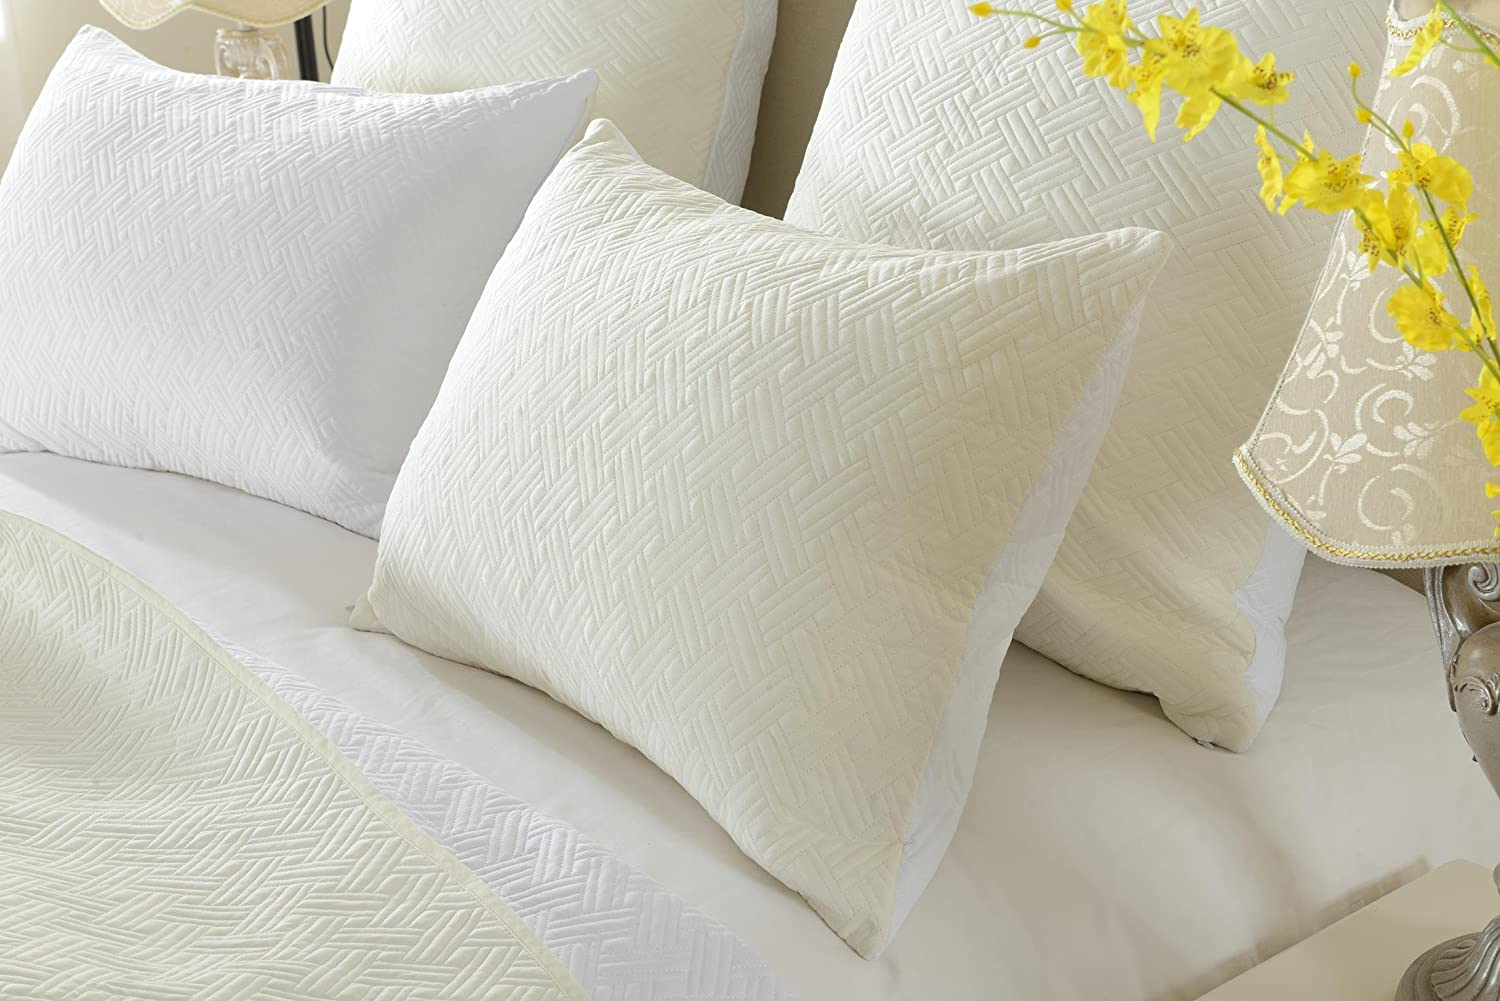 (Twin/Twin XL, Ivory/White) - 3pc Reversible Ivory/White Diamond Quilted Coverlet Set- Style 1002 - Twin/Twin XL - Cherry Hill Collection B0196V87I0 Ivory/White Twin/Twin XL